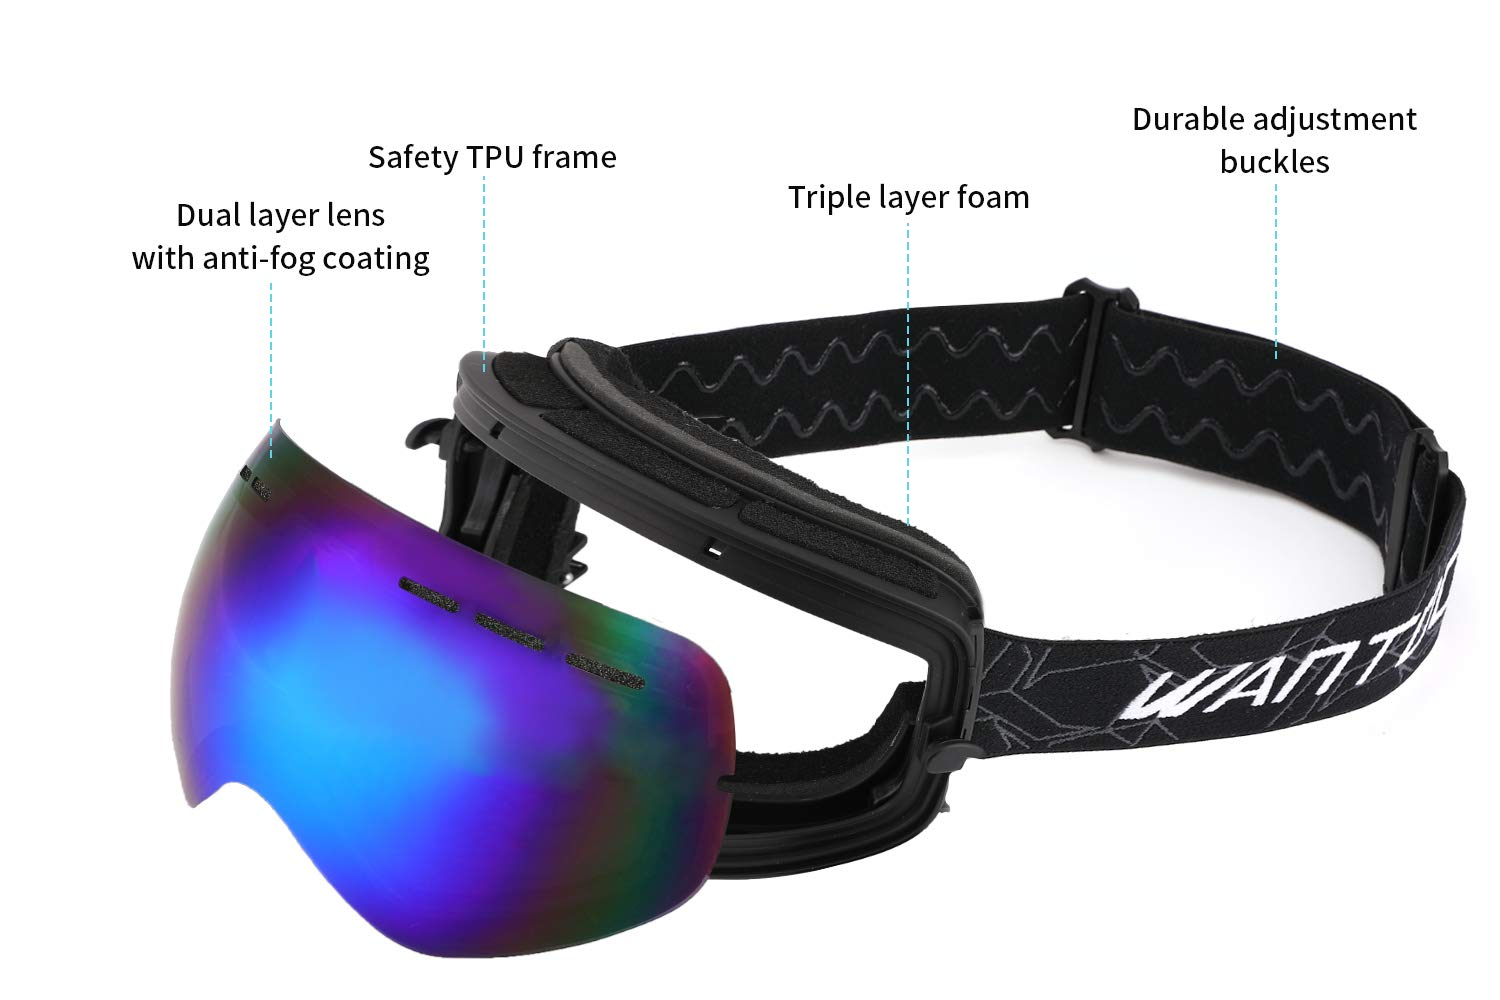 acbeee8f803 Wantdo 180 Degree Ski Goggle Winter Sports Glasses Snowboard Snowmobile  Skate Spherical Dual Layers Lens UV400 Protection Anti-Fog OTG Helmet  Compatible ...